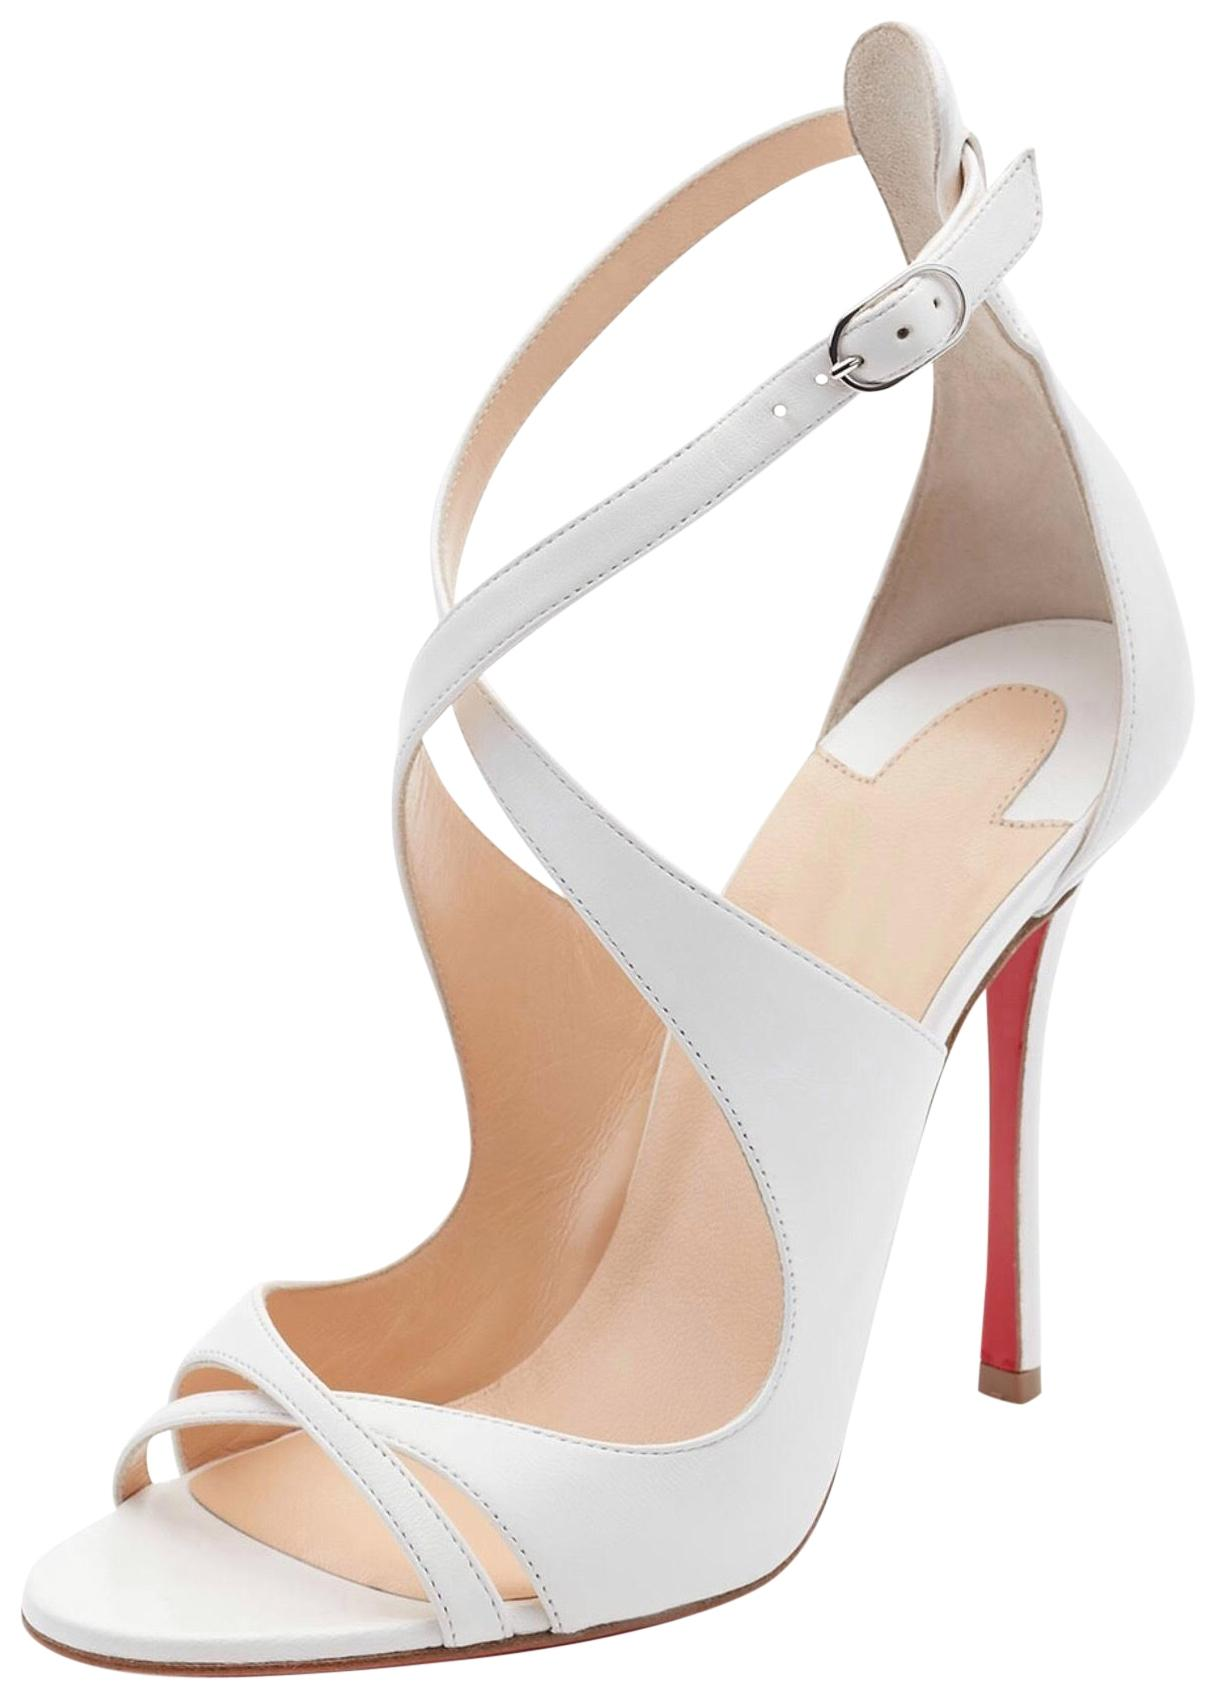 79b834df0ee promo code for louboutin white sandals c0278 b2c18